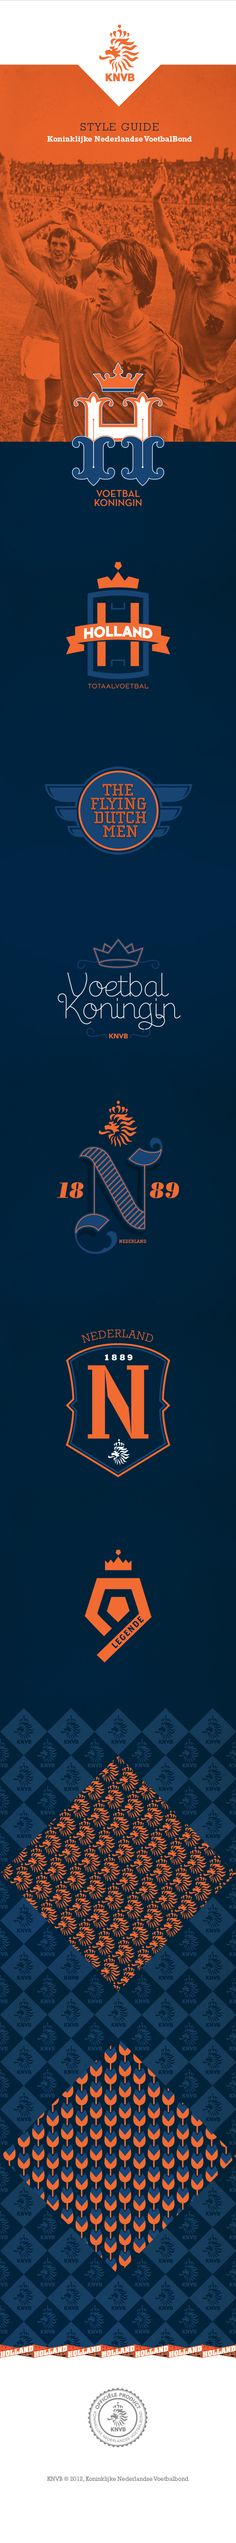 KNVB by The News